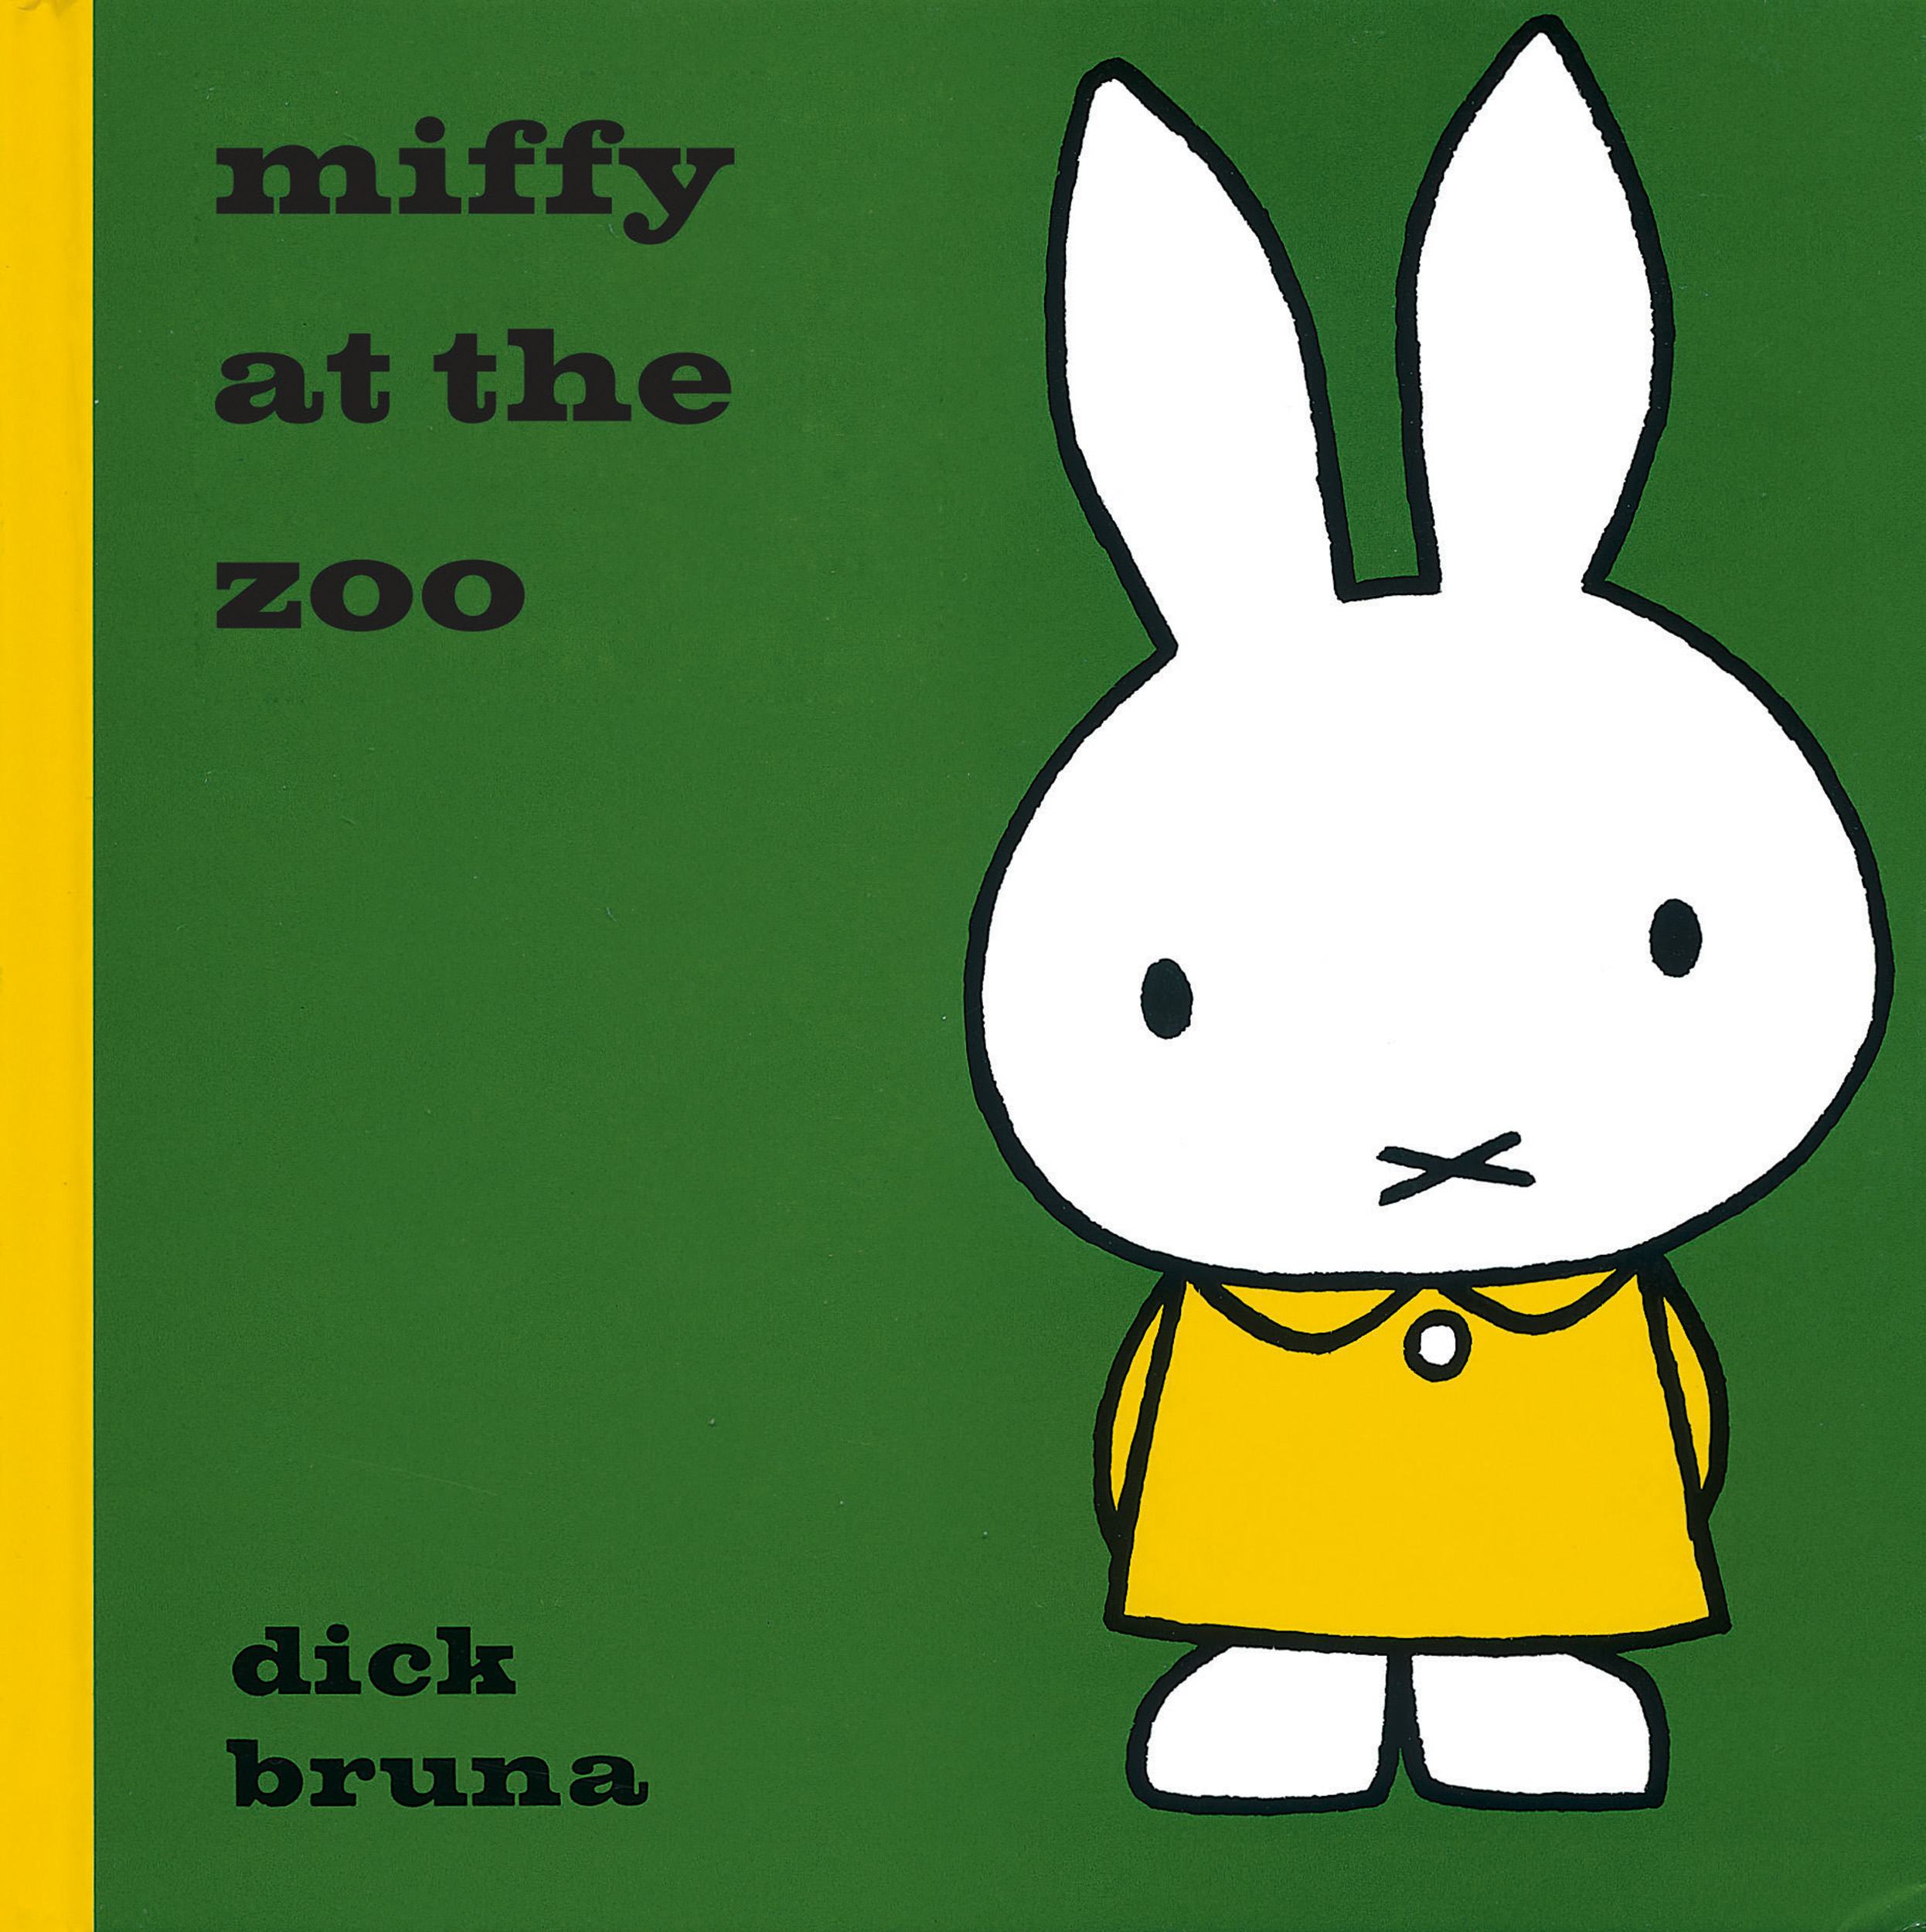 Tuinieren Spreuken Tips For Going To The Zoo With A Toddler Miffy Blogs